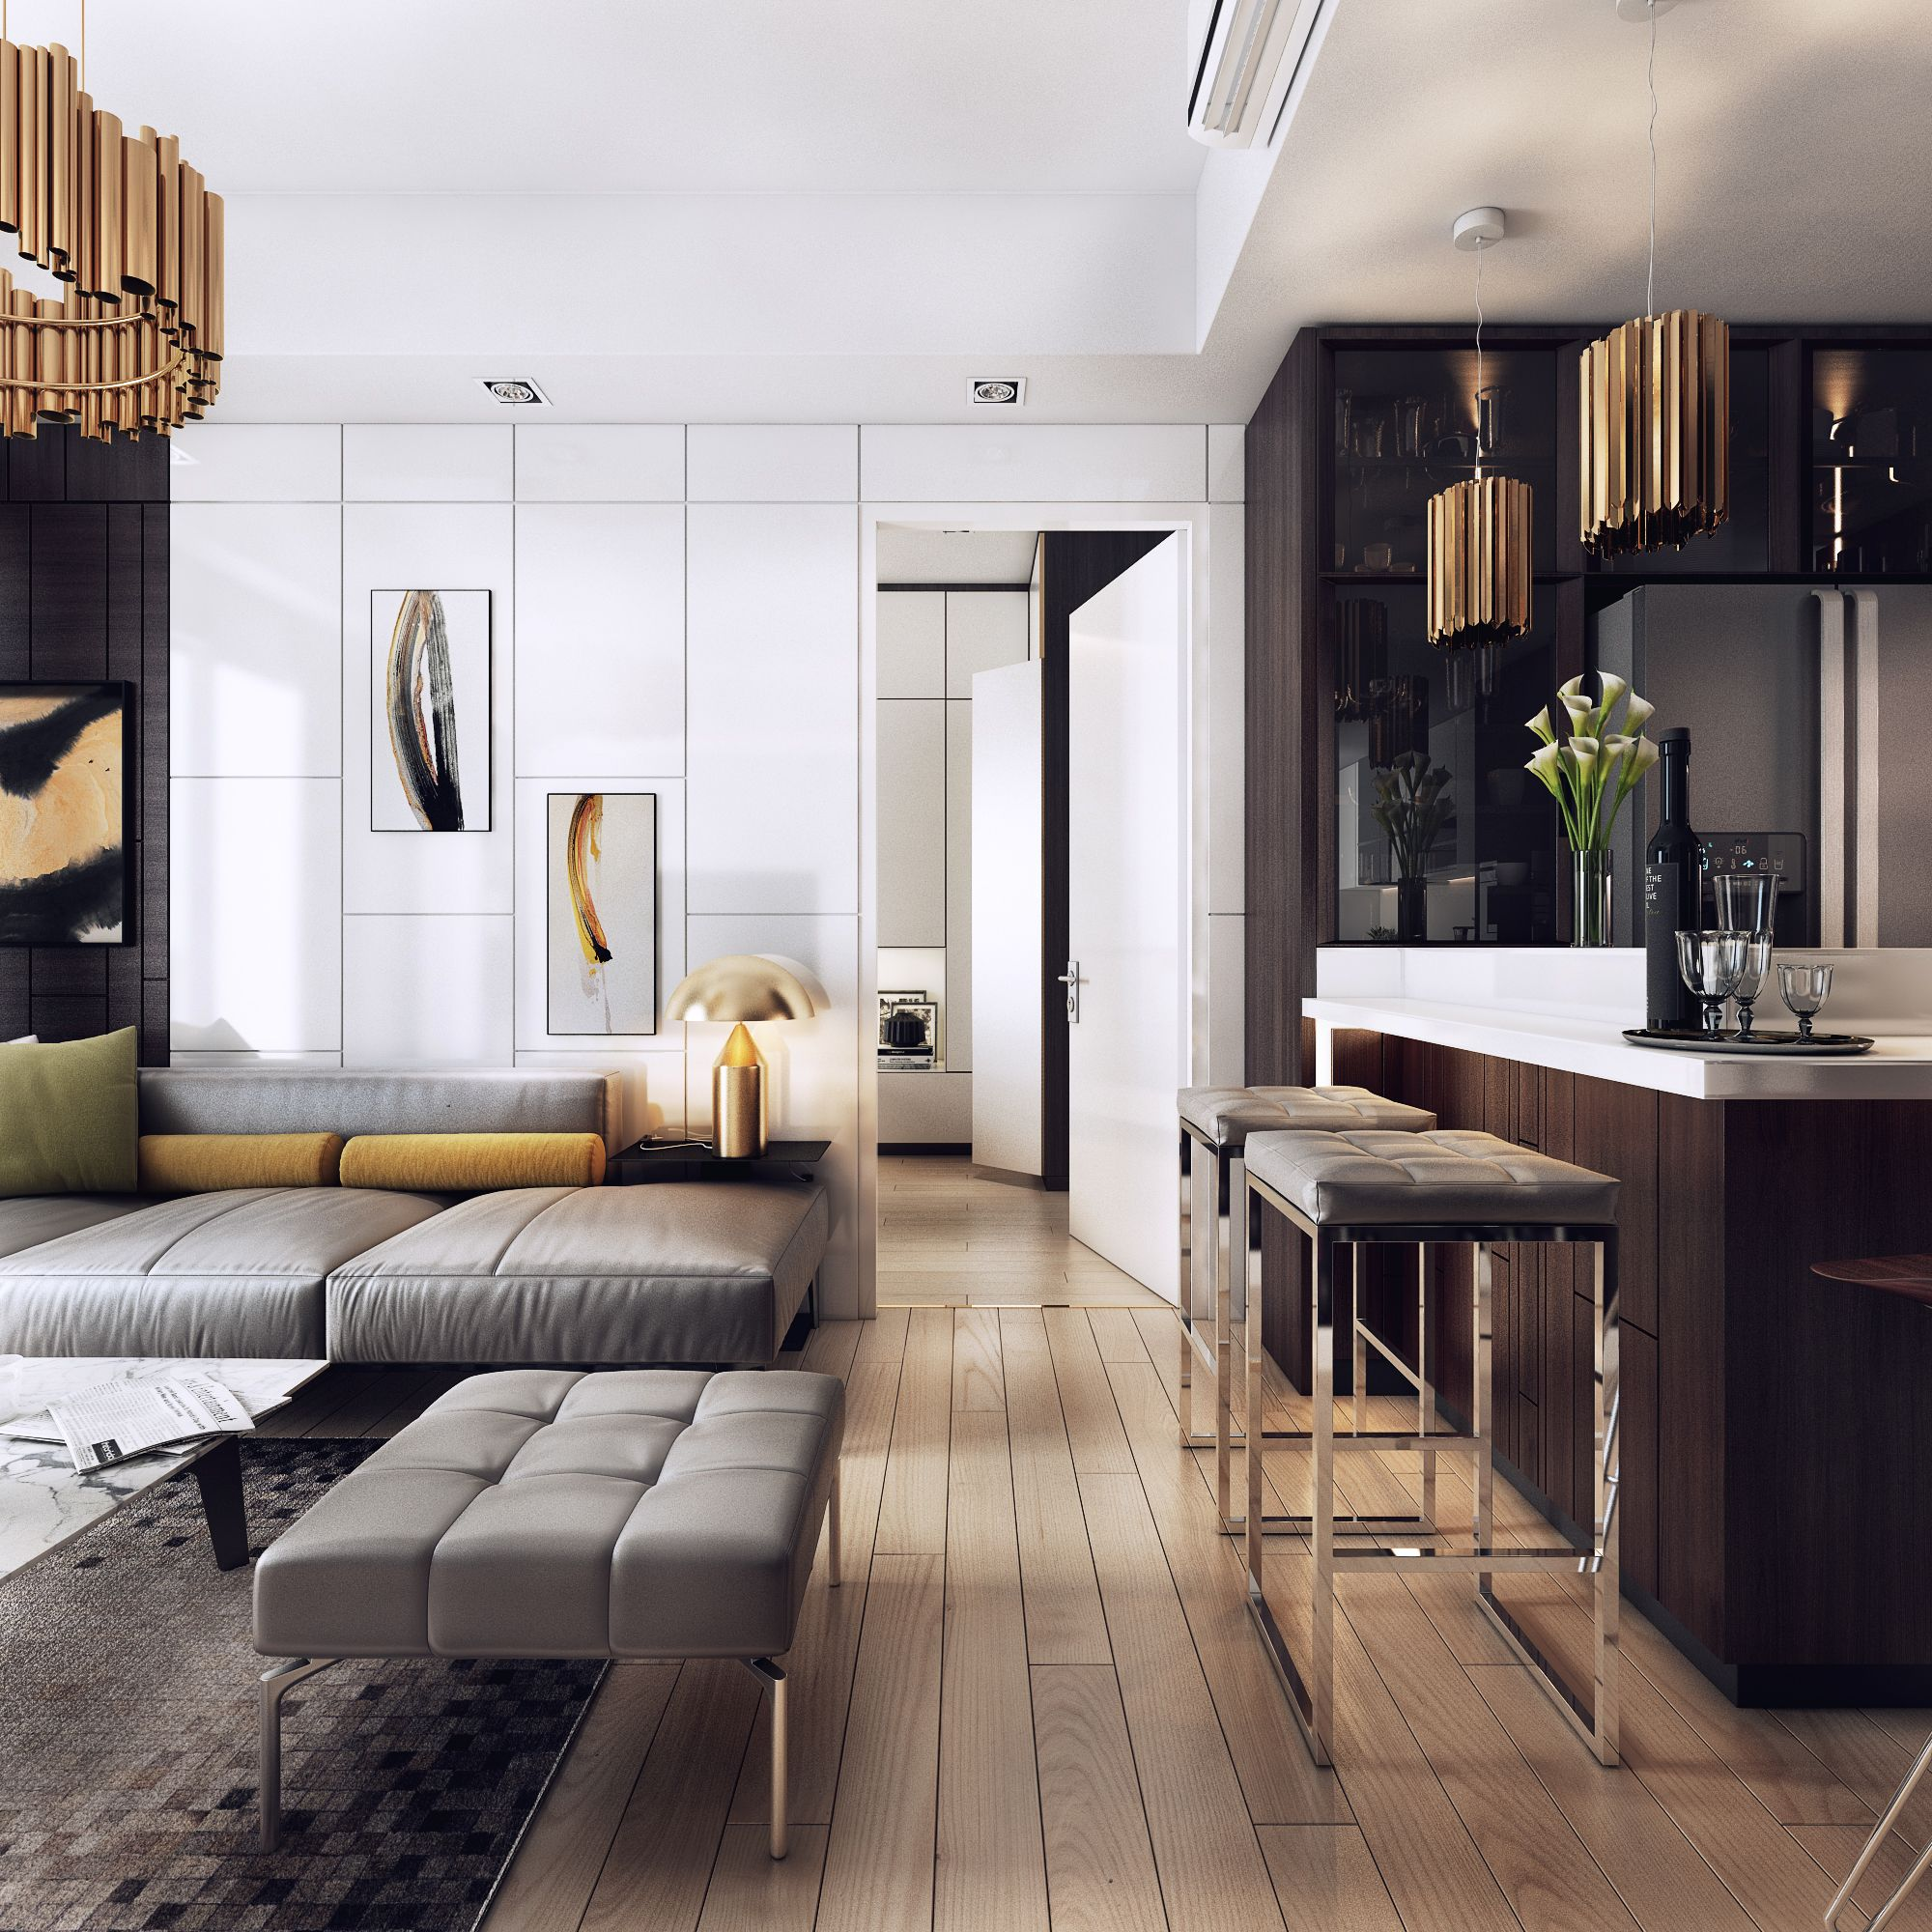 10 Ultra Luxury Apartment Interior Design Ideas | Pinterest ...